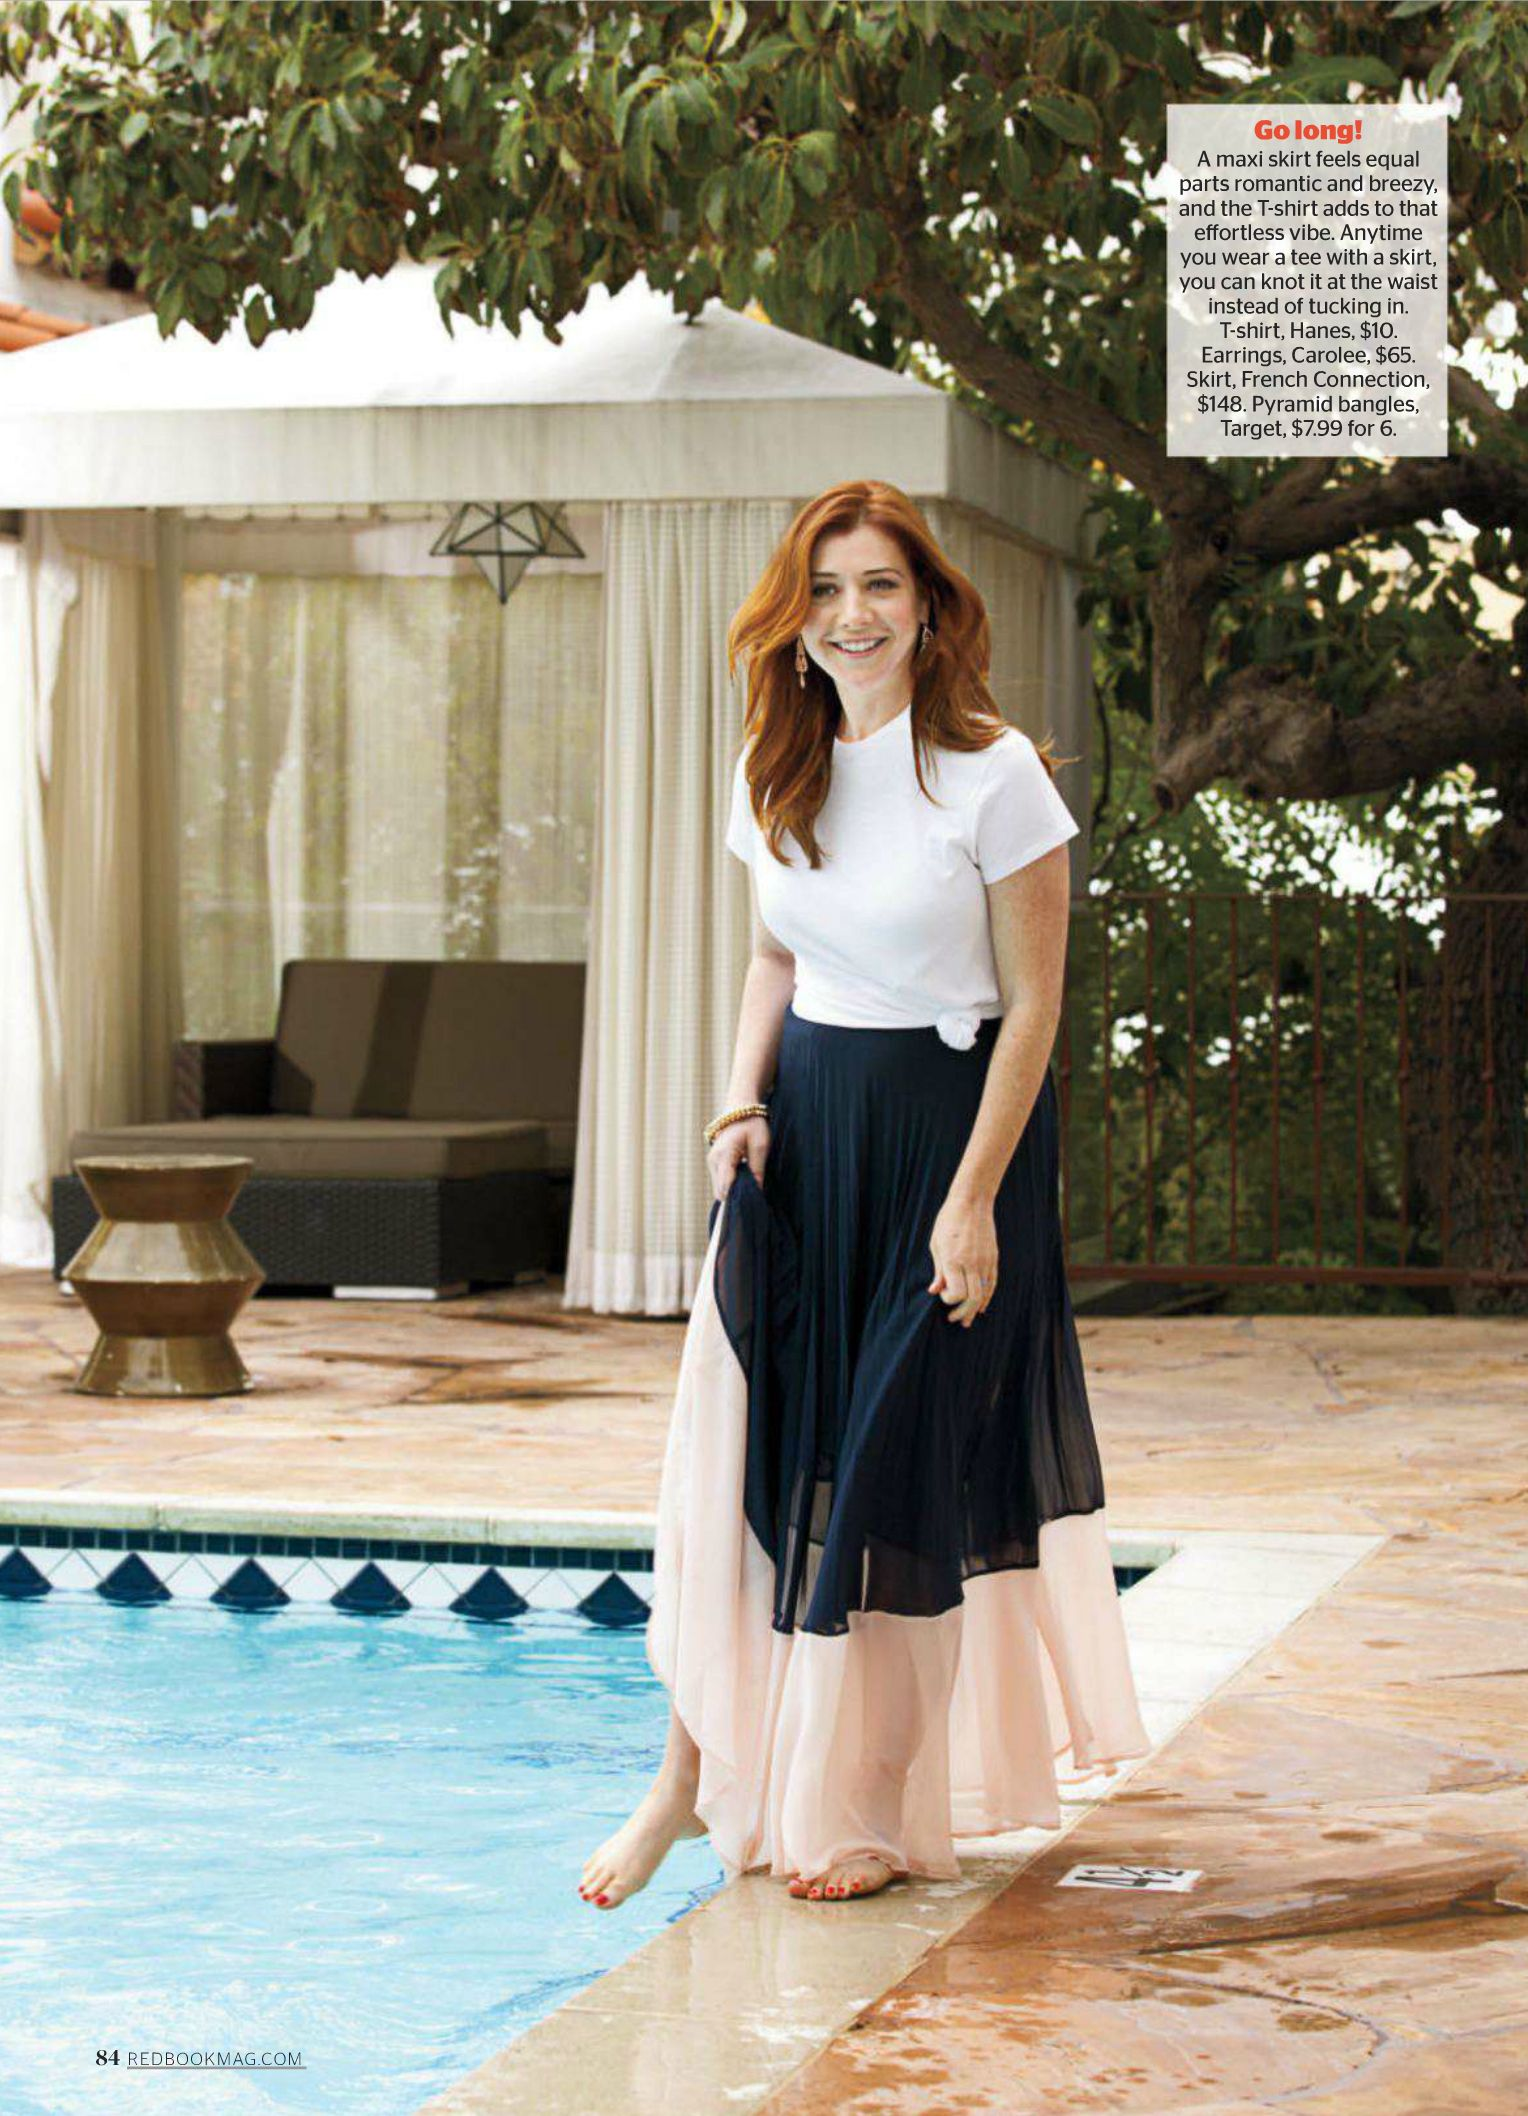 Watch Hot pictures of Alyson Hannigan. 2018-2019 celebrityes photos leaks! video